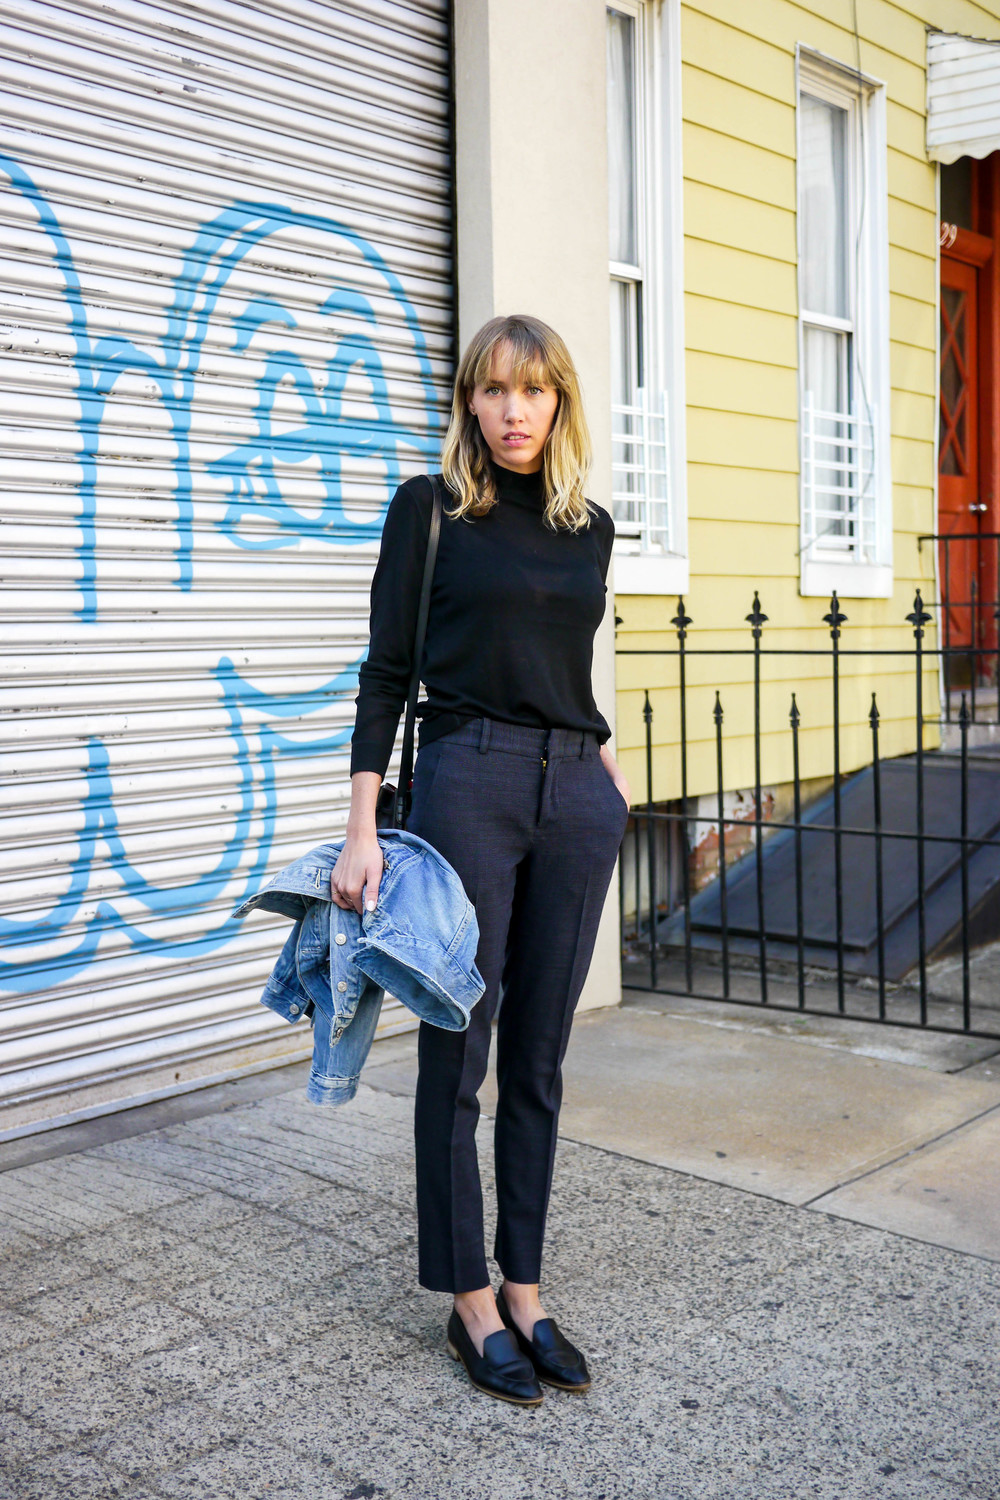 Streetstyle Details:  Top, Everlane  ; Pants, Karen Walker ; Jacket, Levi's ;  Bag, Mansur Gavriel  ;  Shoes, Everlane